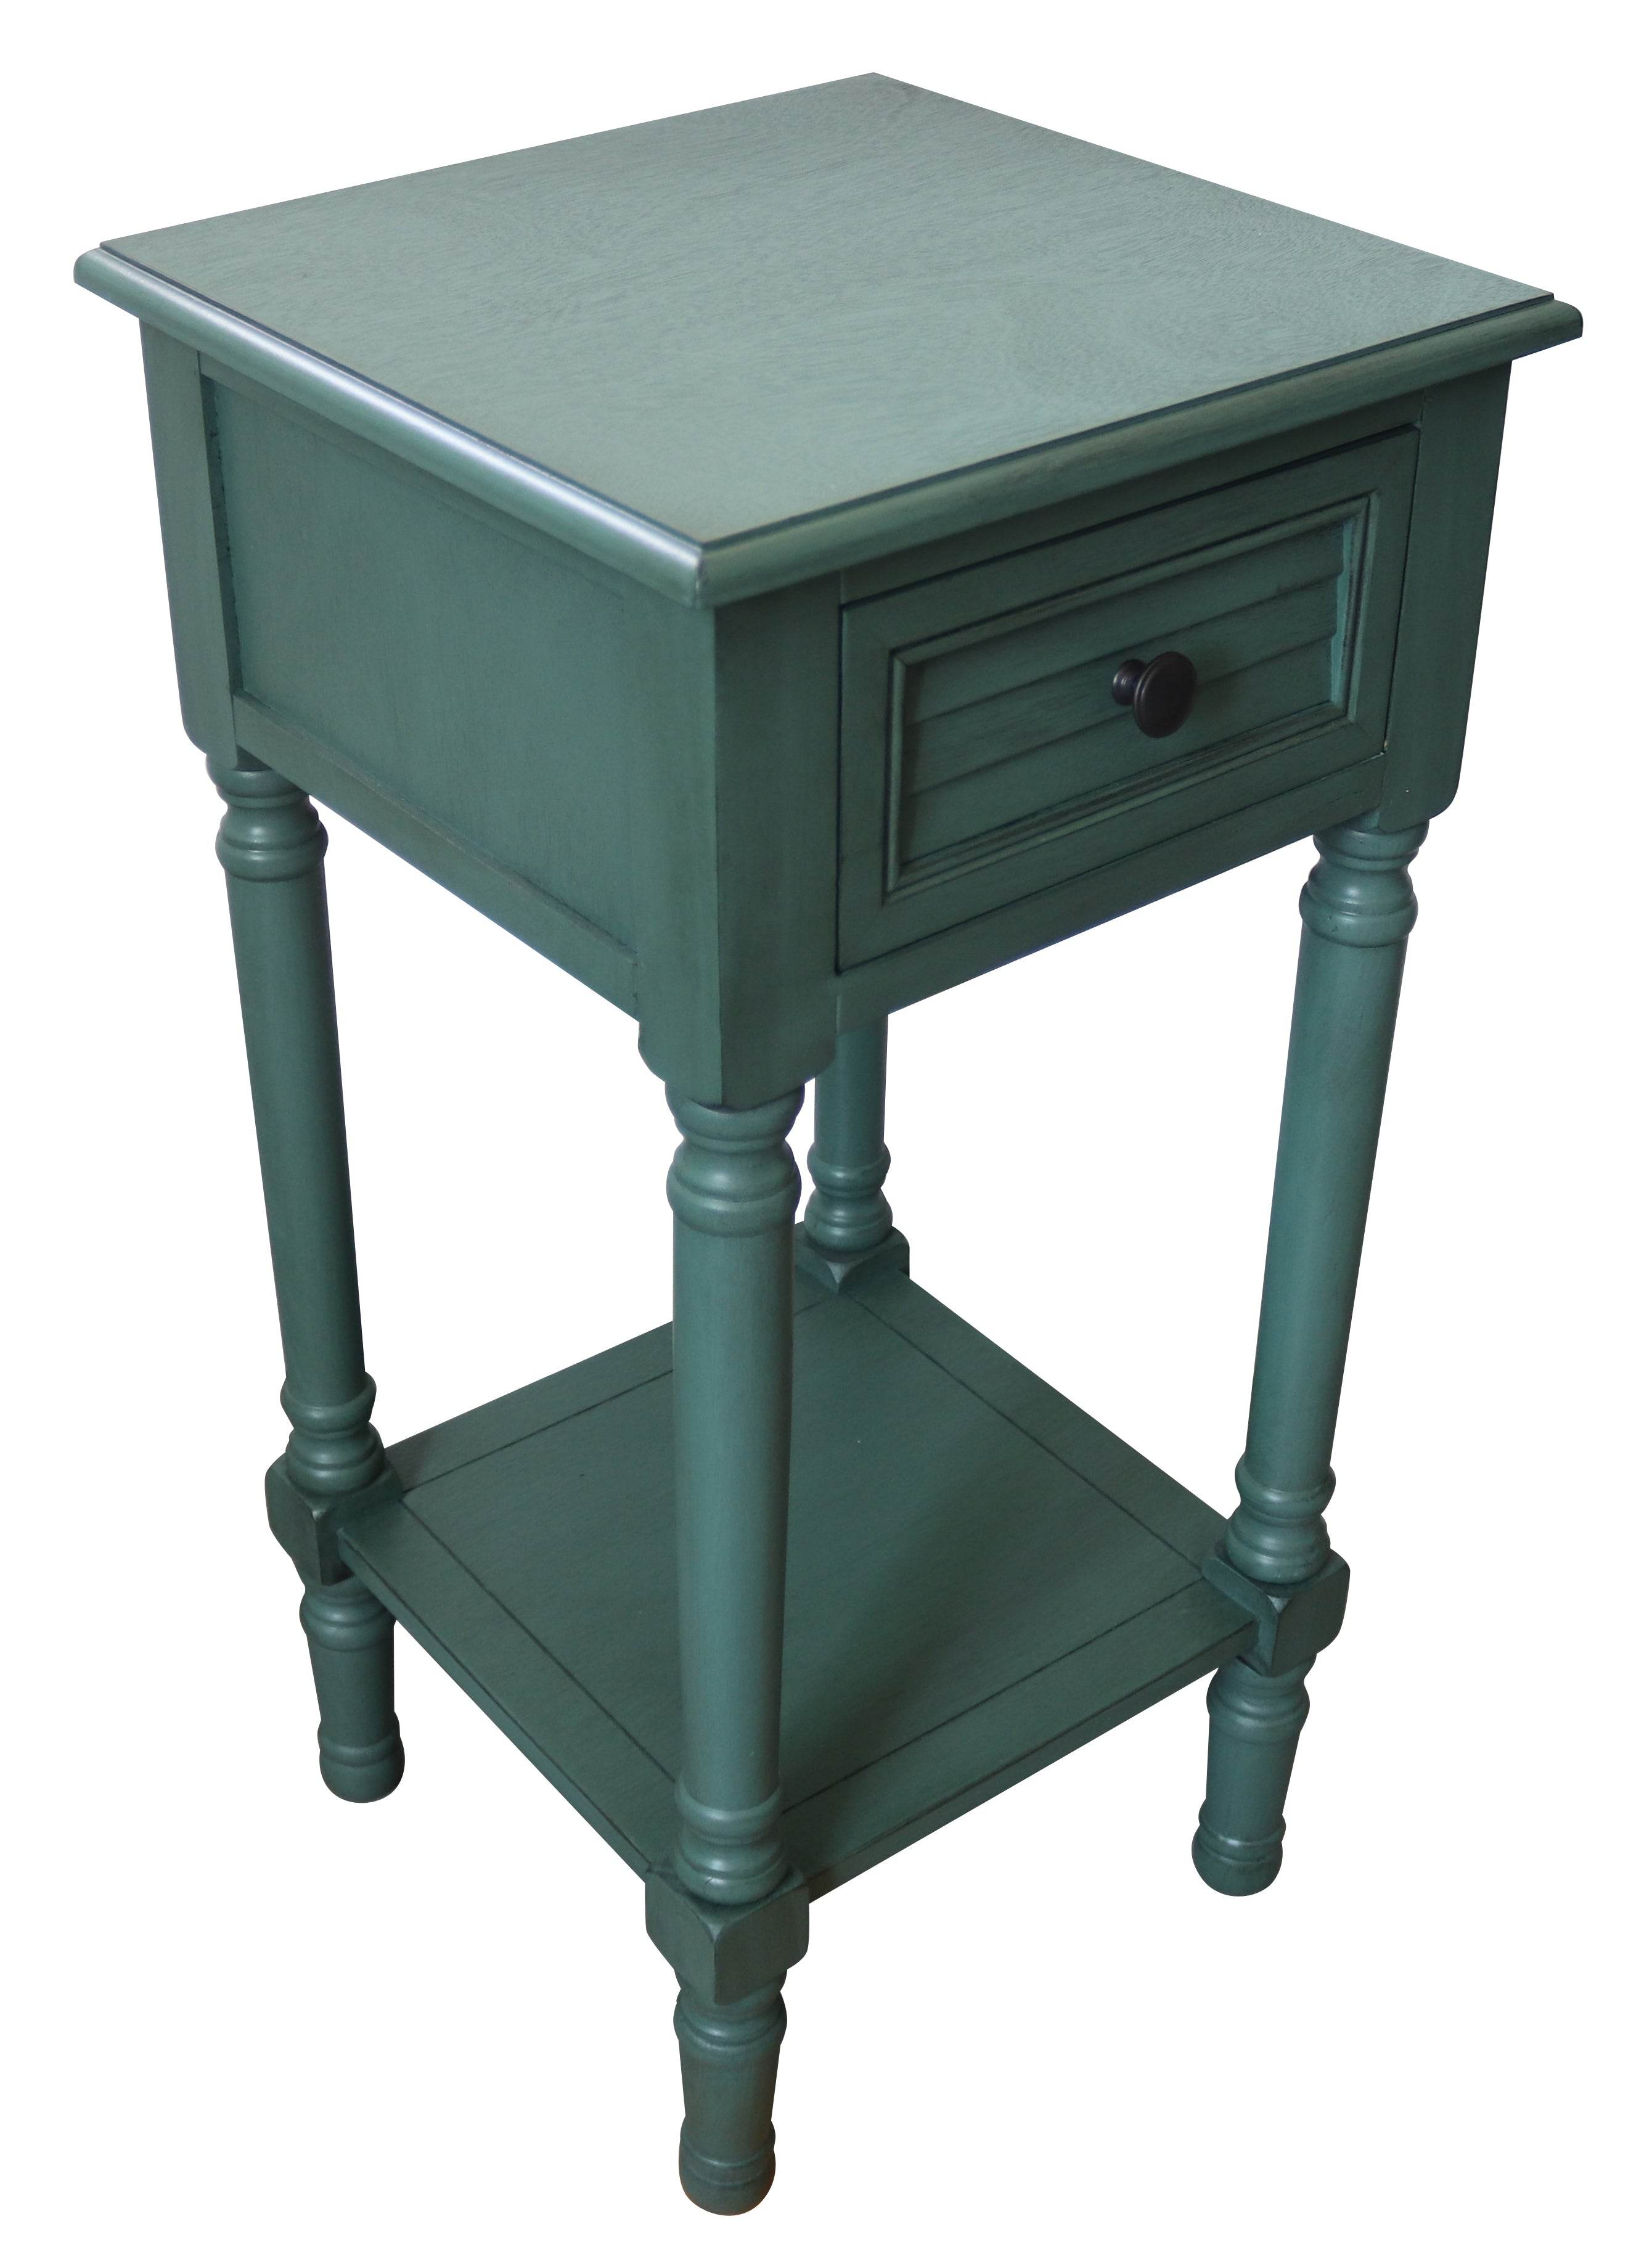 Brookdale End Table With Drawer 28 1 4 Inch Tall 14 1 4 Inch